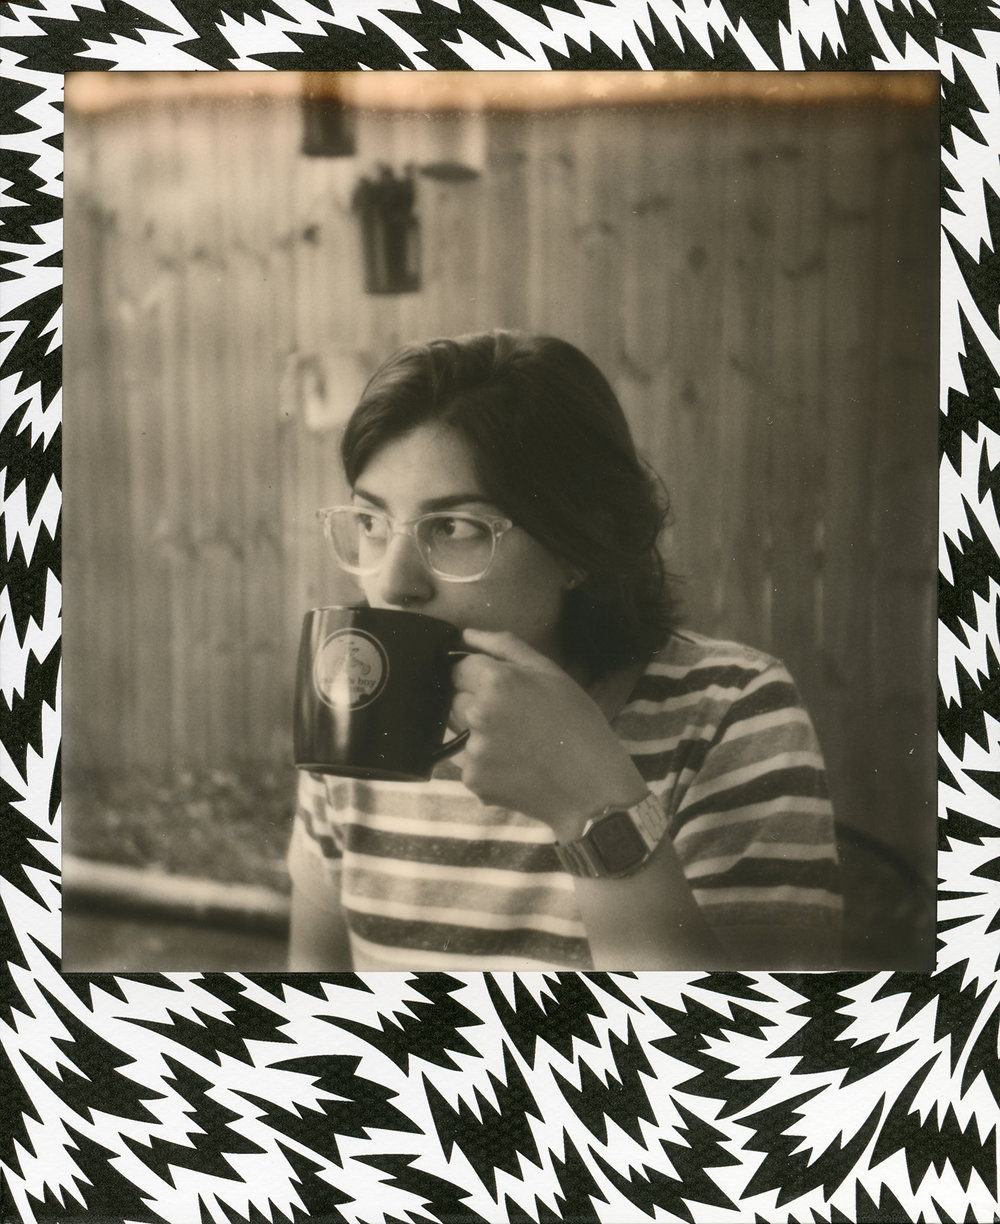 Taryn | Polaroid Sun 660 | Impossible black and white expired film | David Burgh